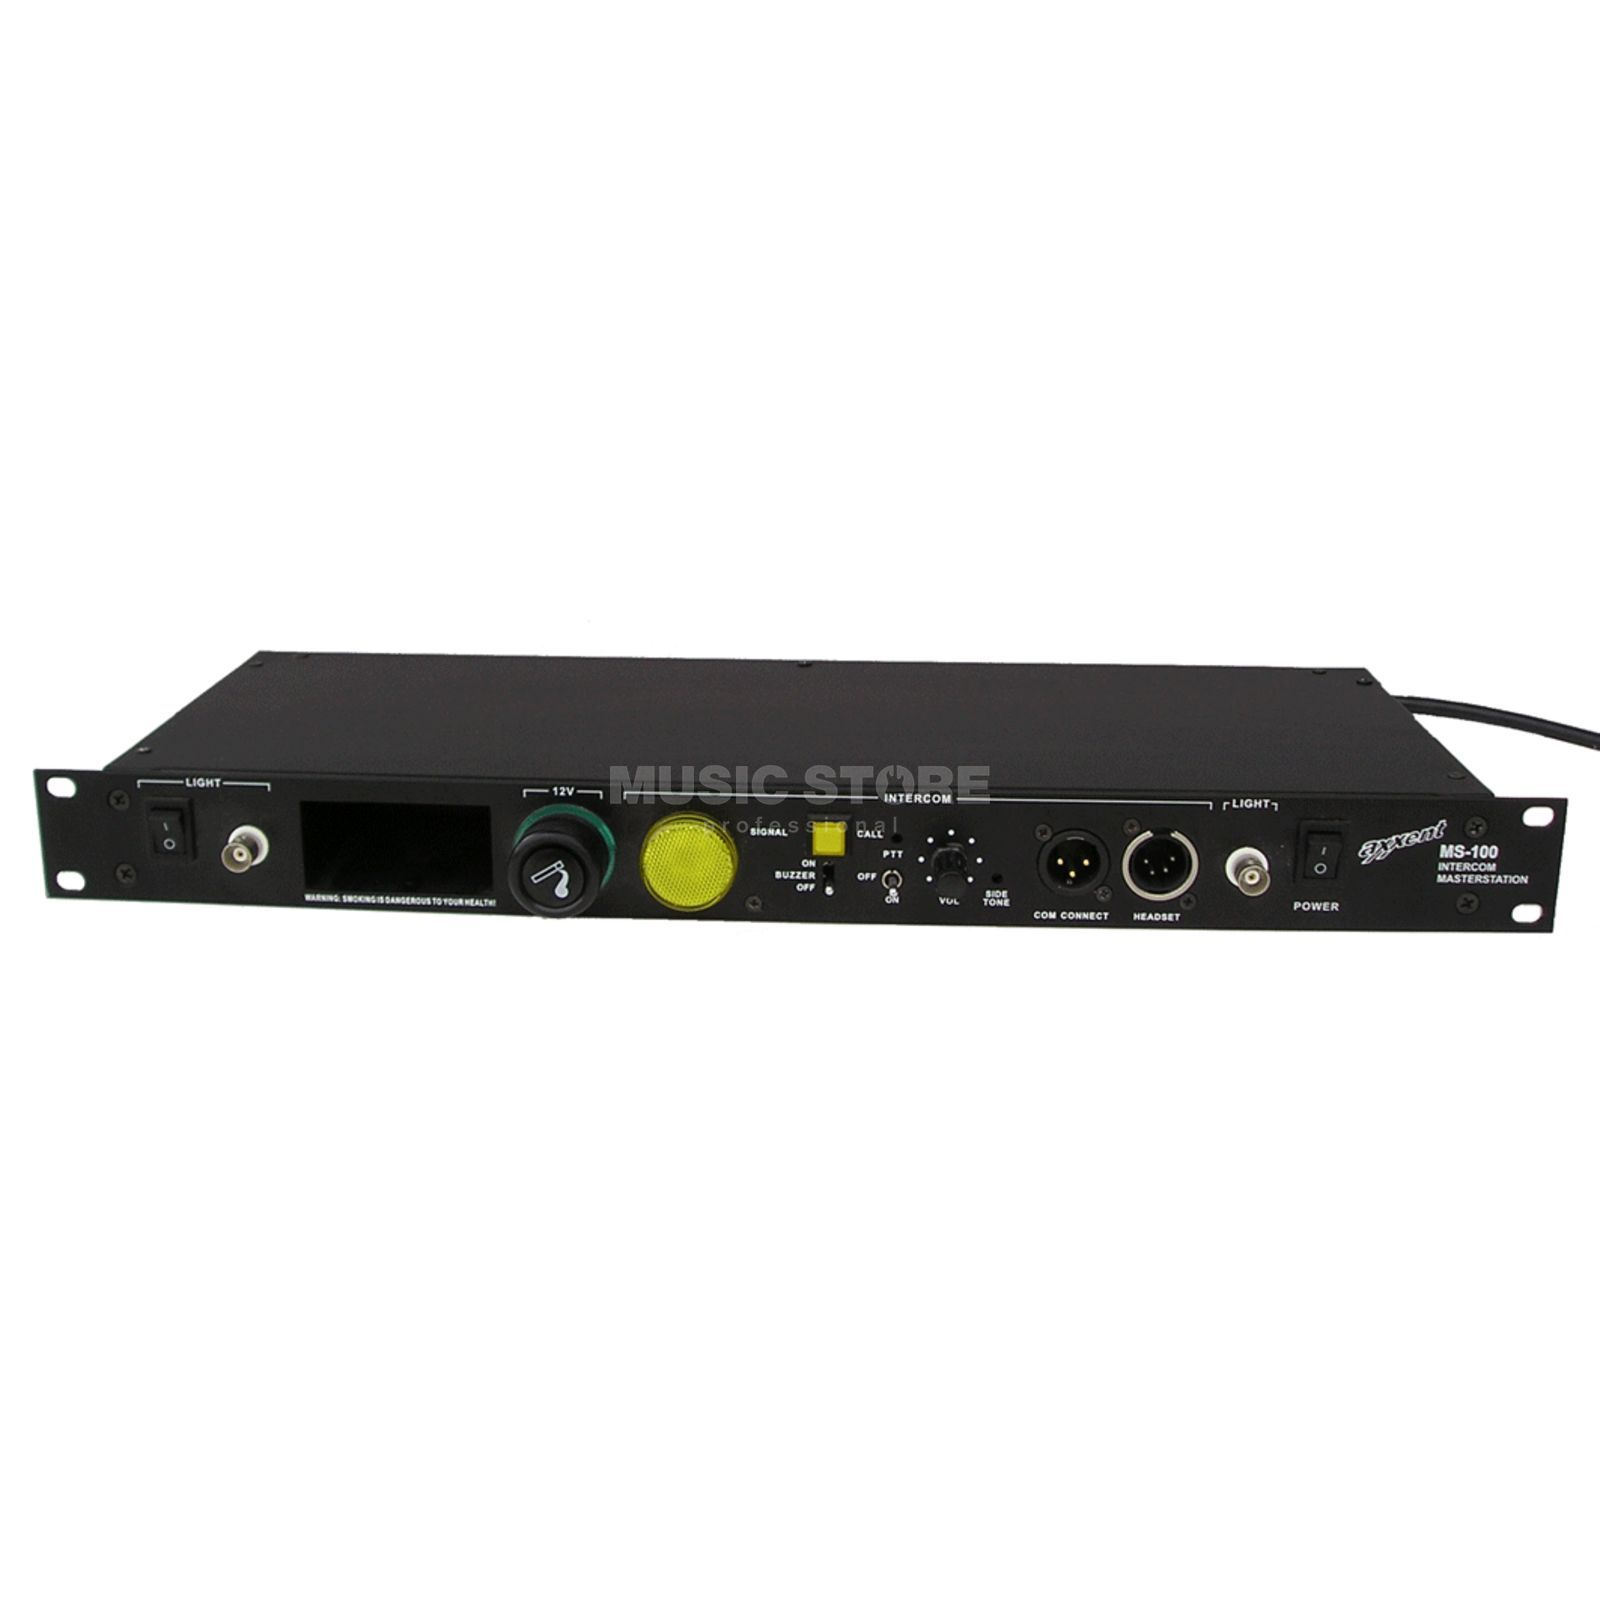 "axxent MS-100 19"" Master Station 1-Channel Master Station Produktbillede"